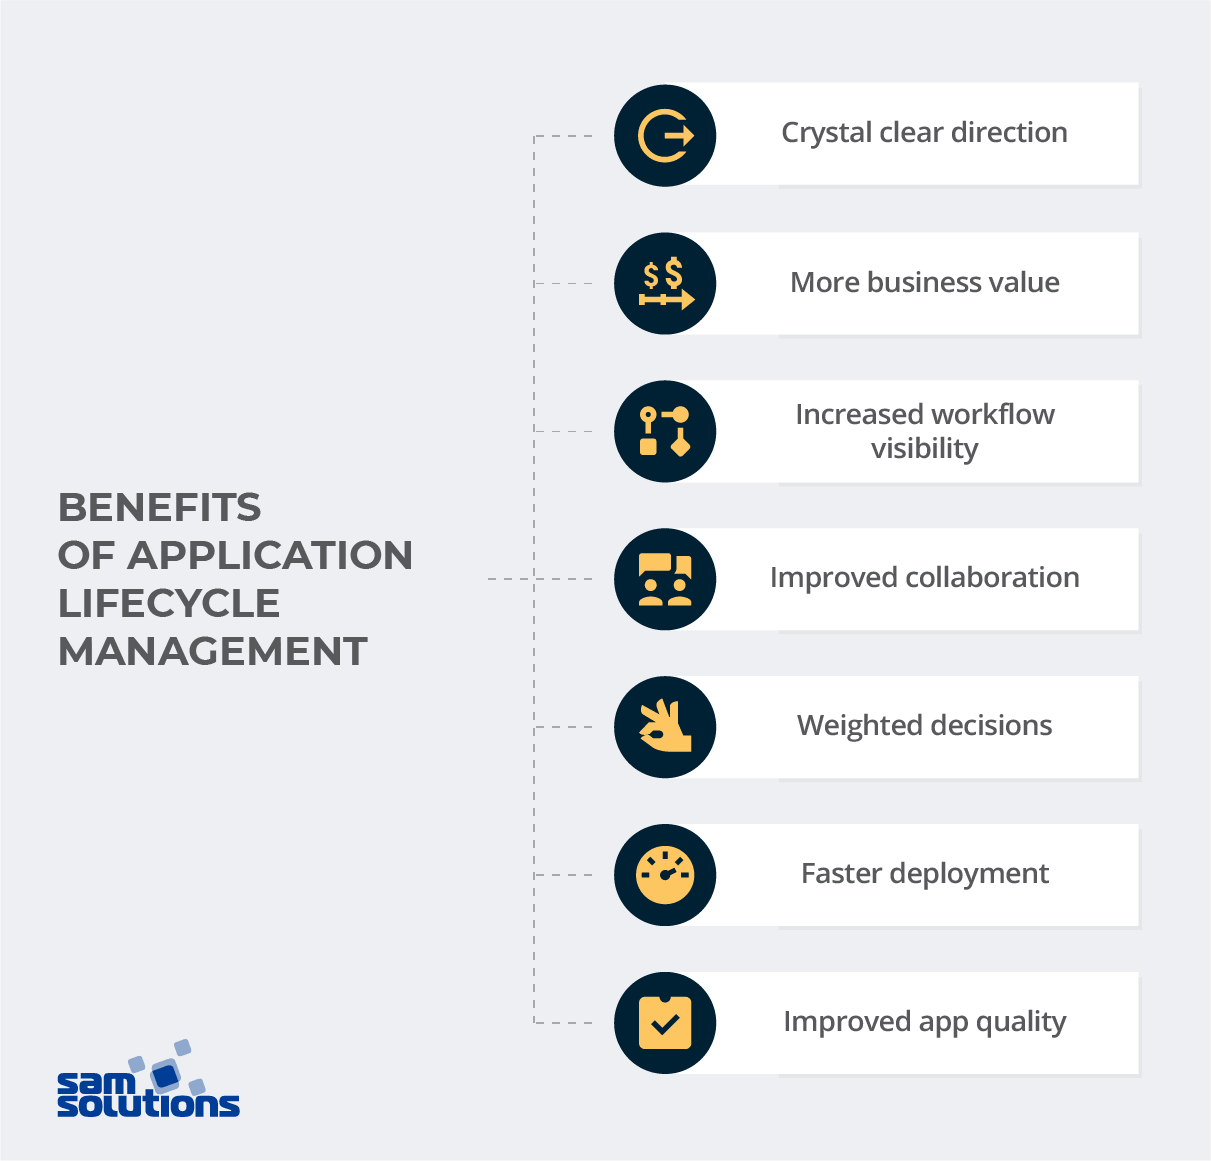 Benefits of Application Lifecycle Management